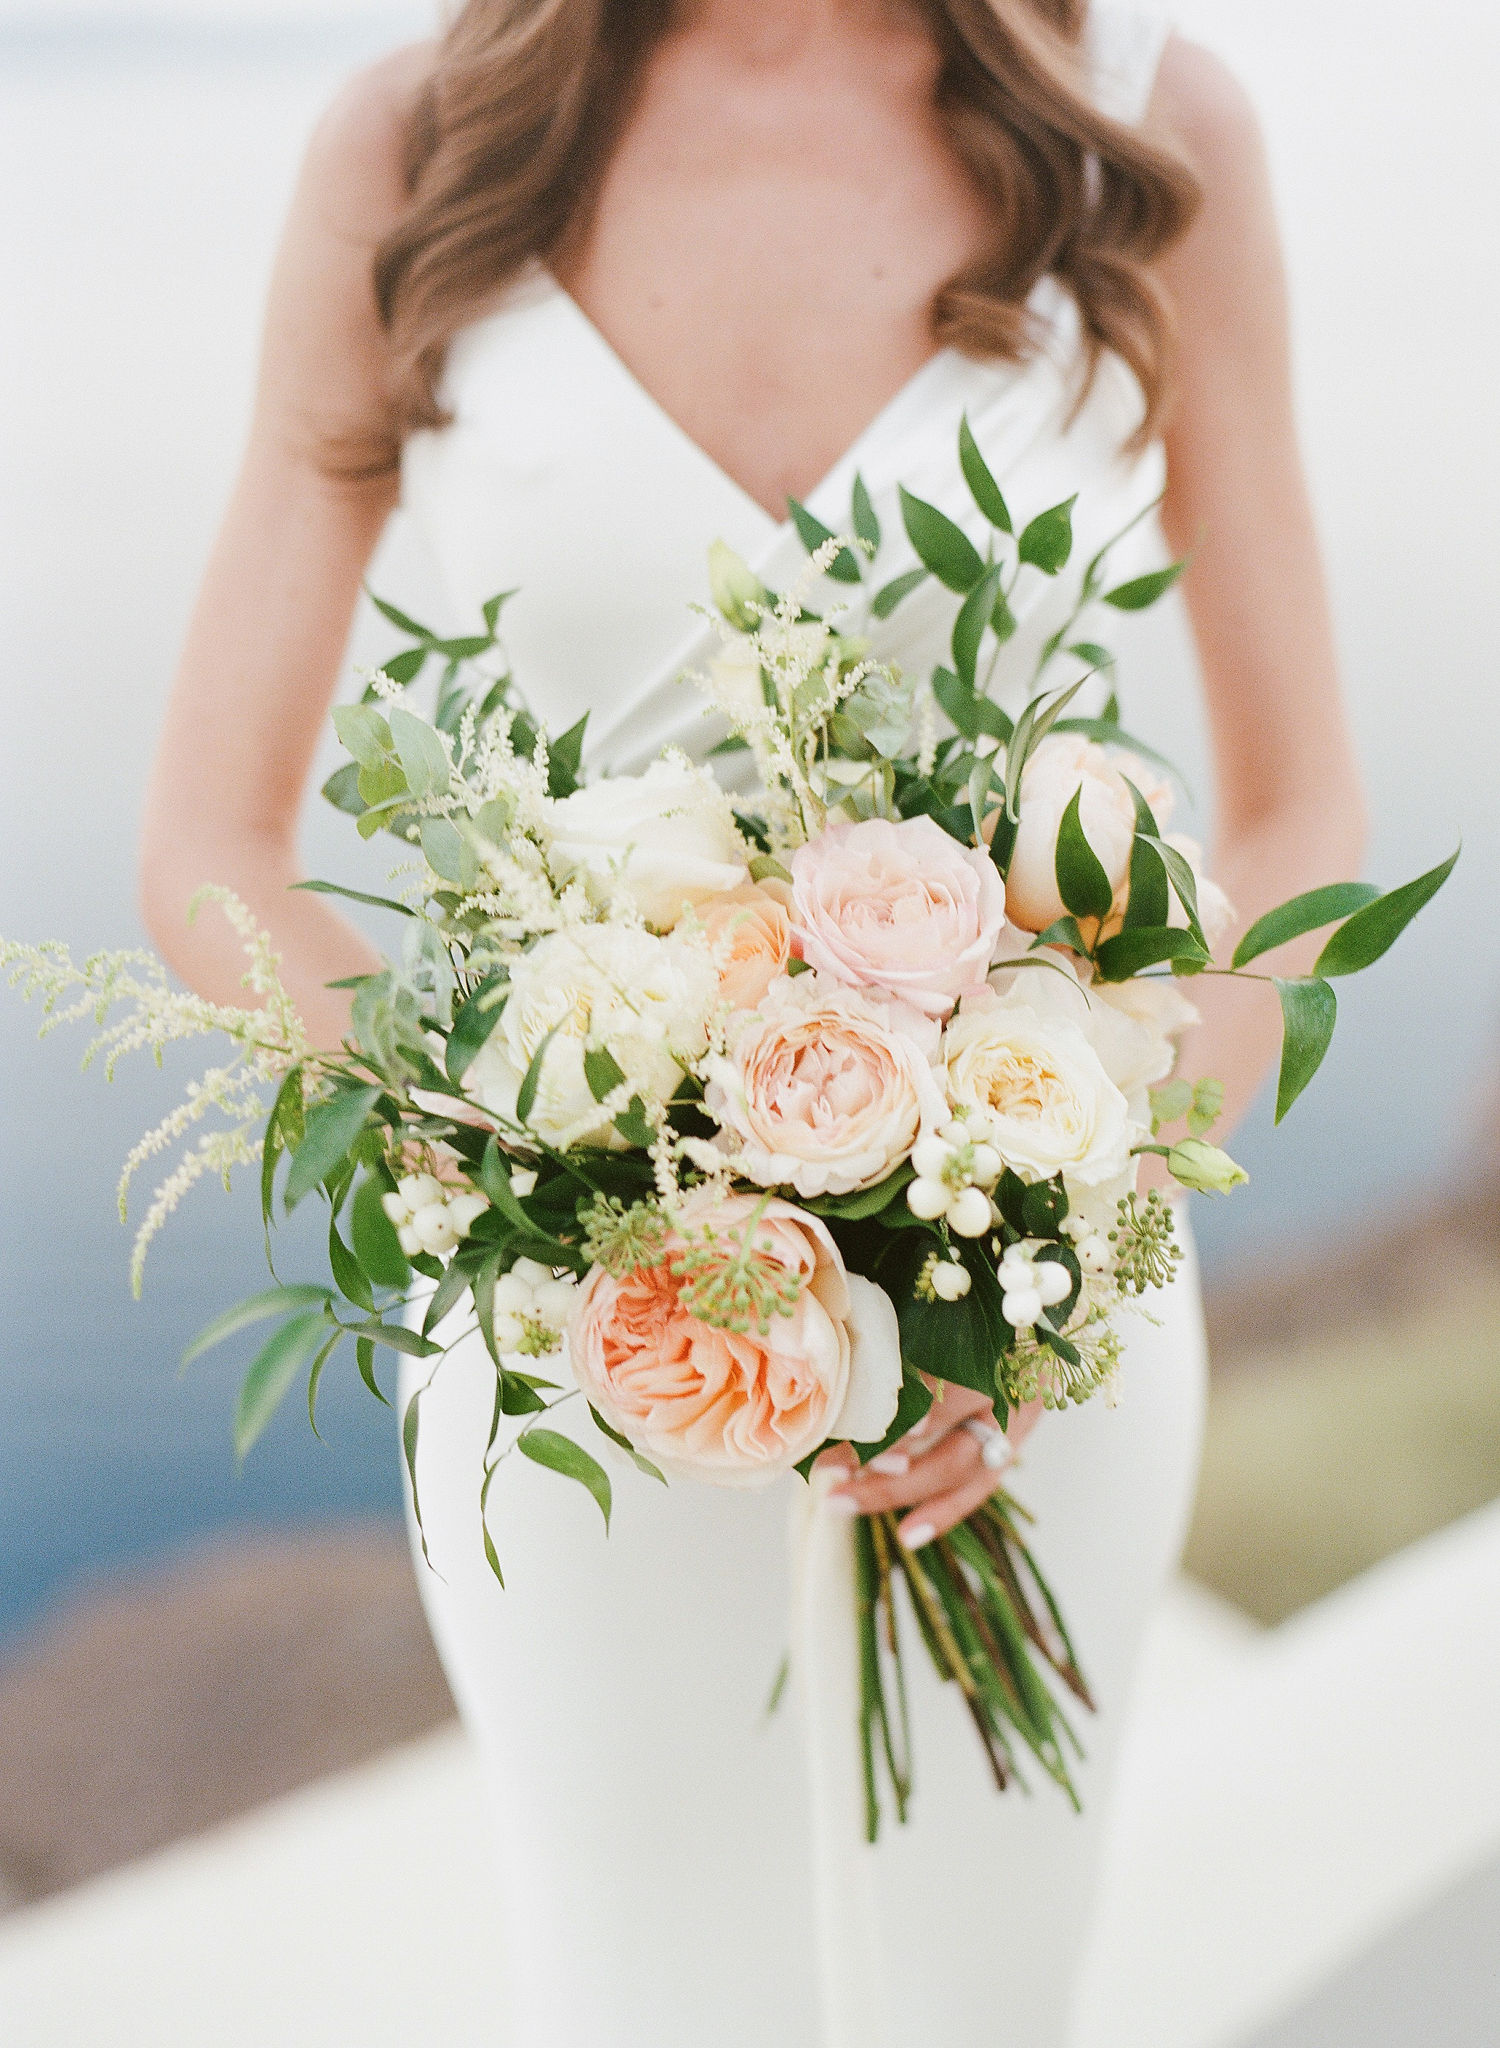 pastel colored garden roses, standard roses, lisianthus and foliage bouquet